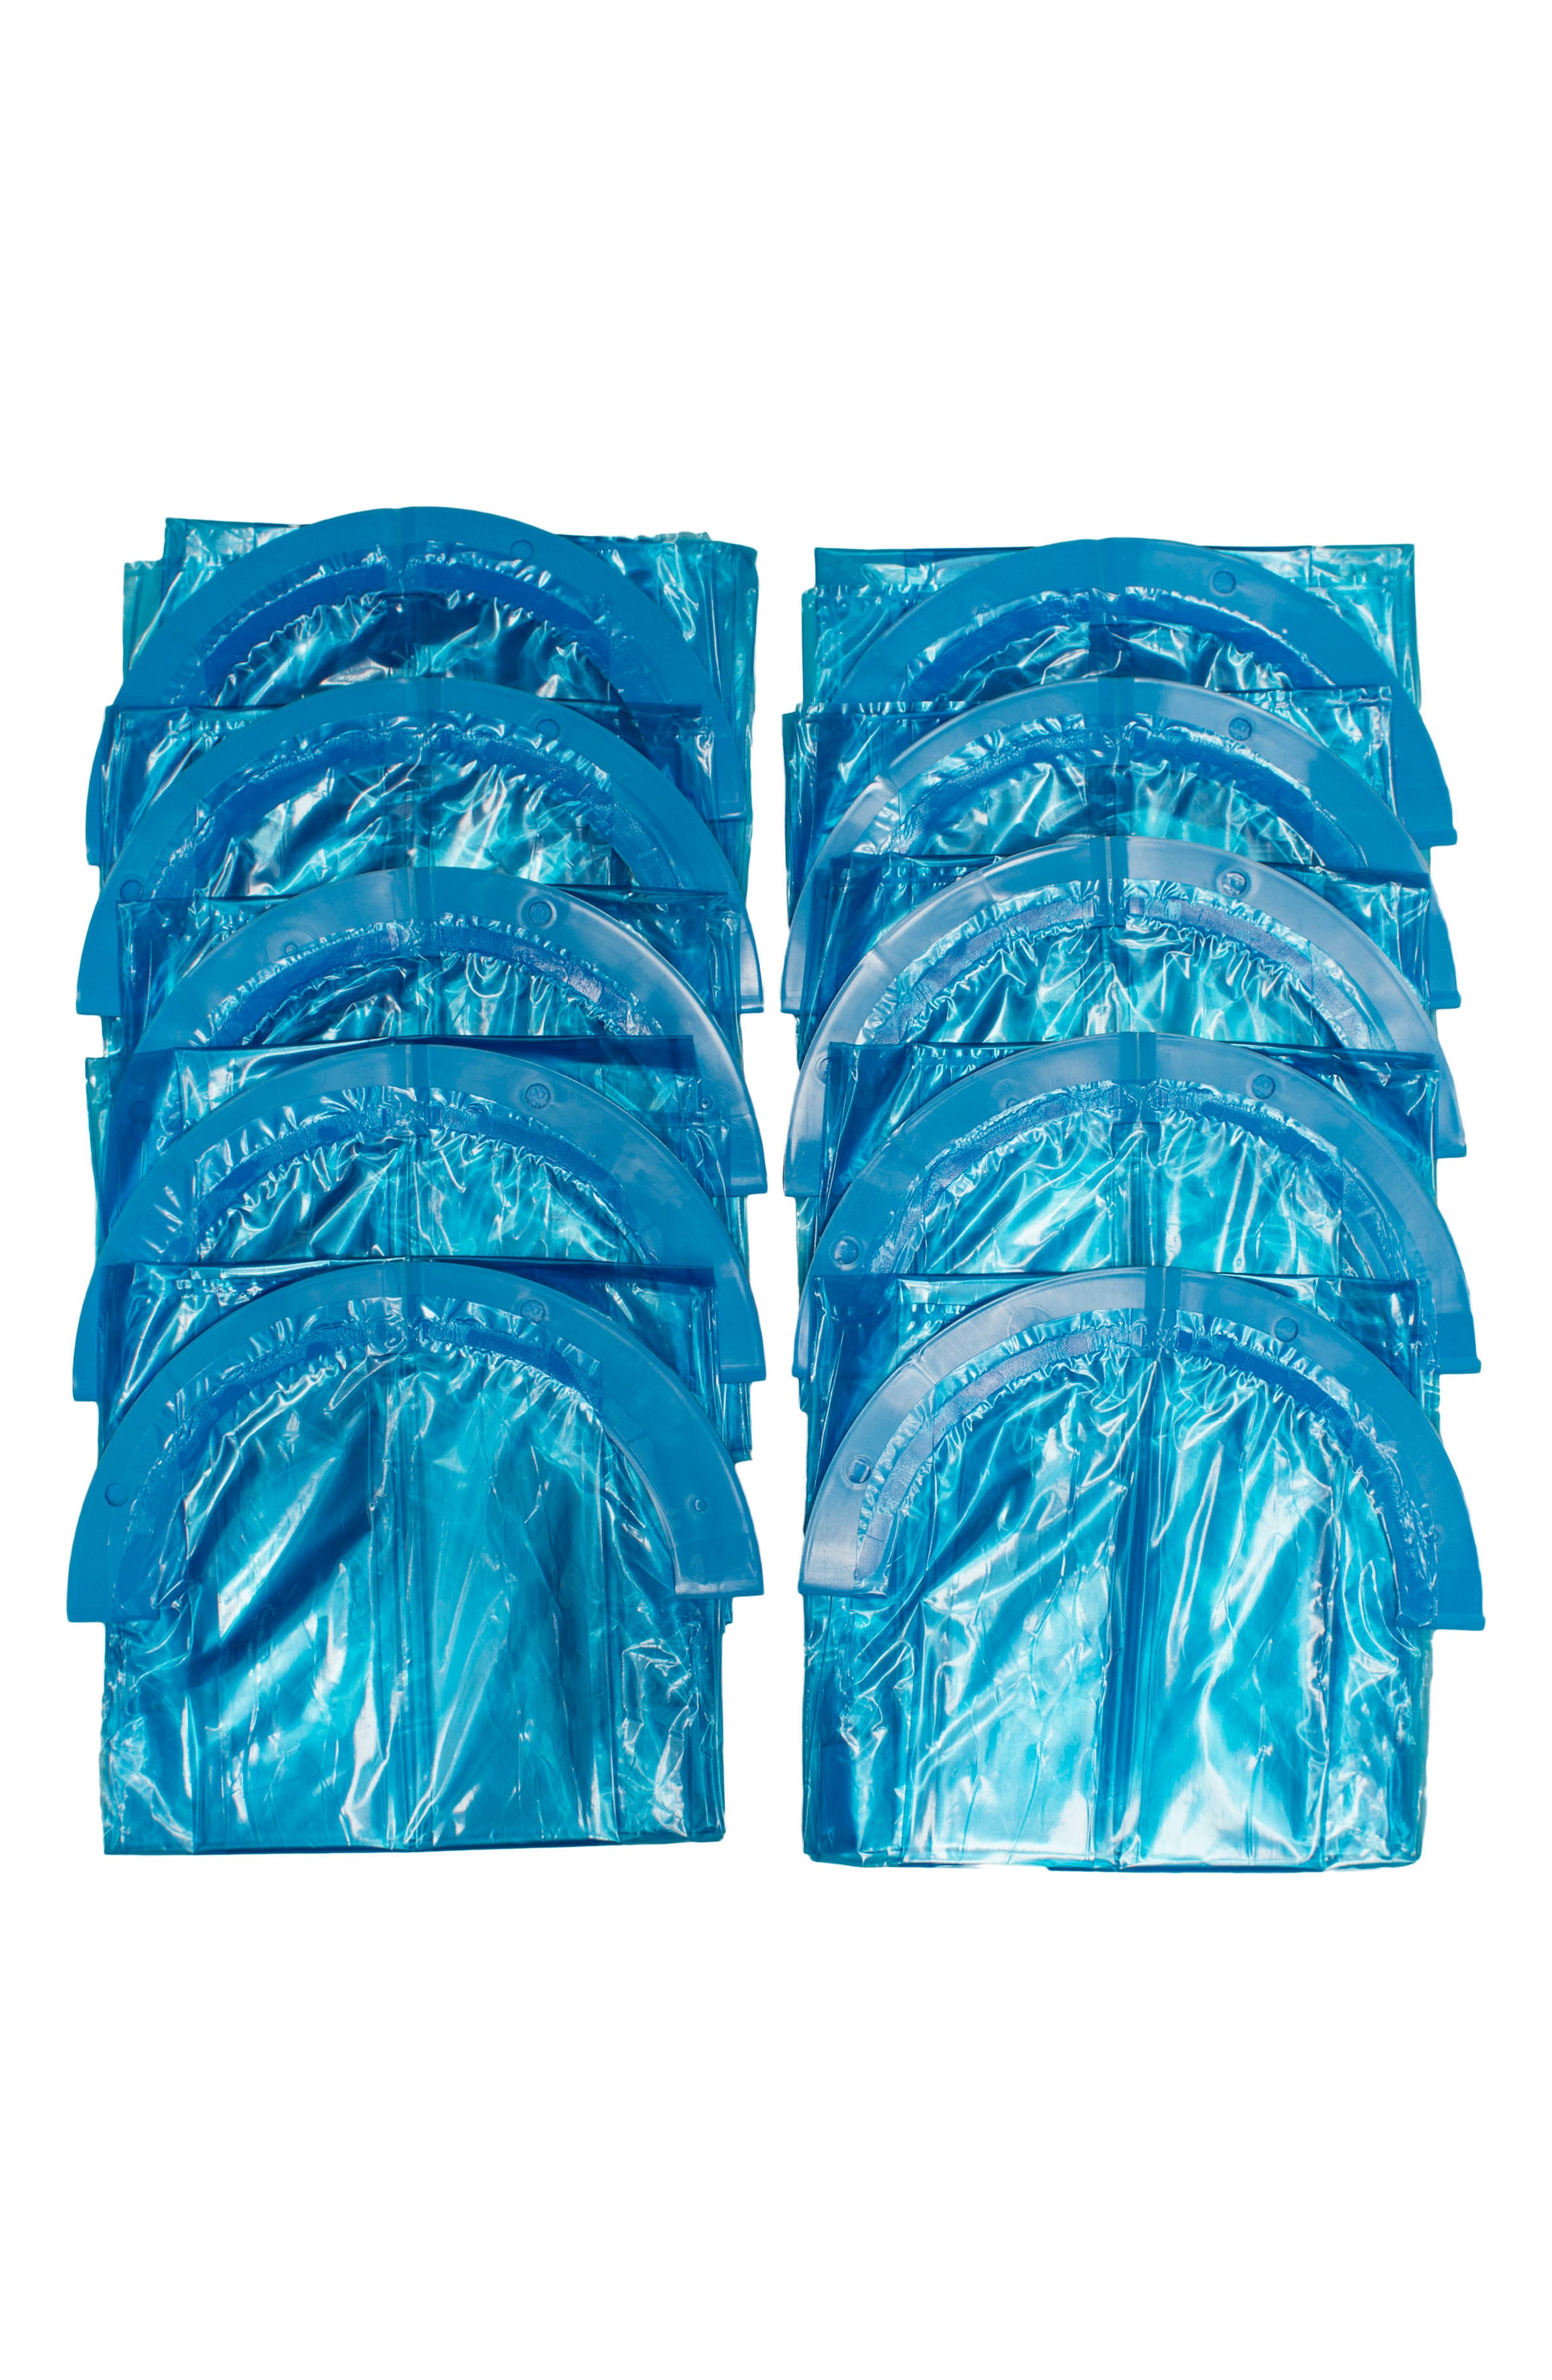 Twist'r Diaper Disposal System Set of 10 Refill Bags,                         Main,                         color, 100